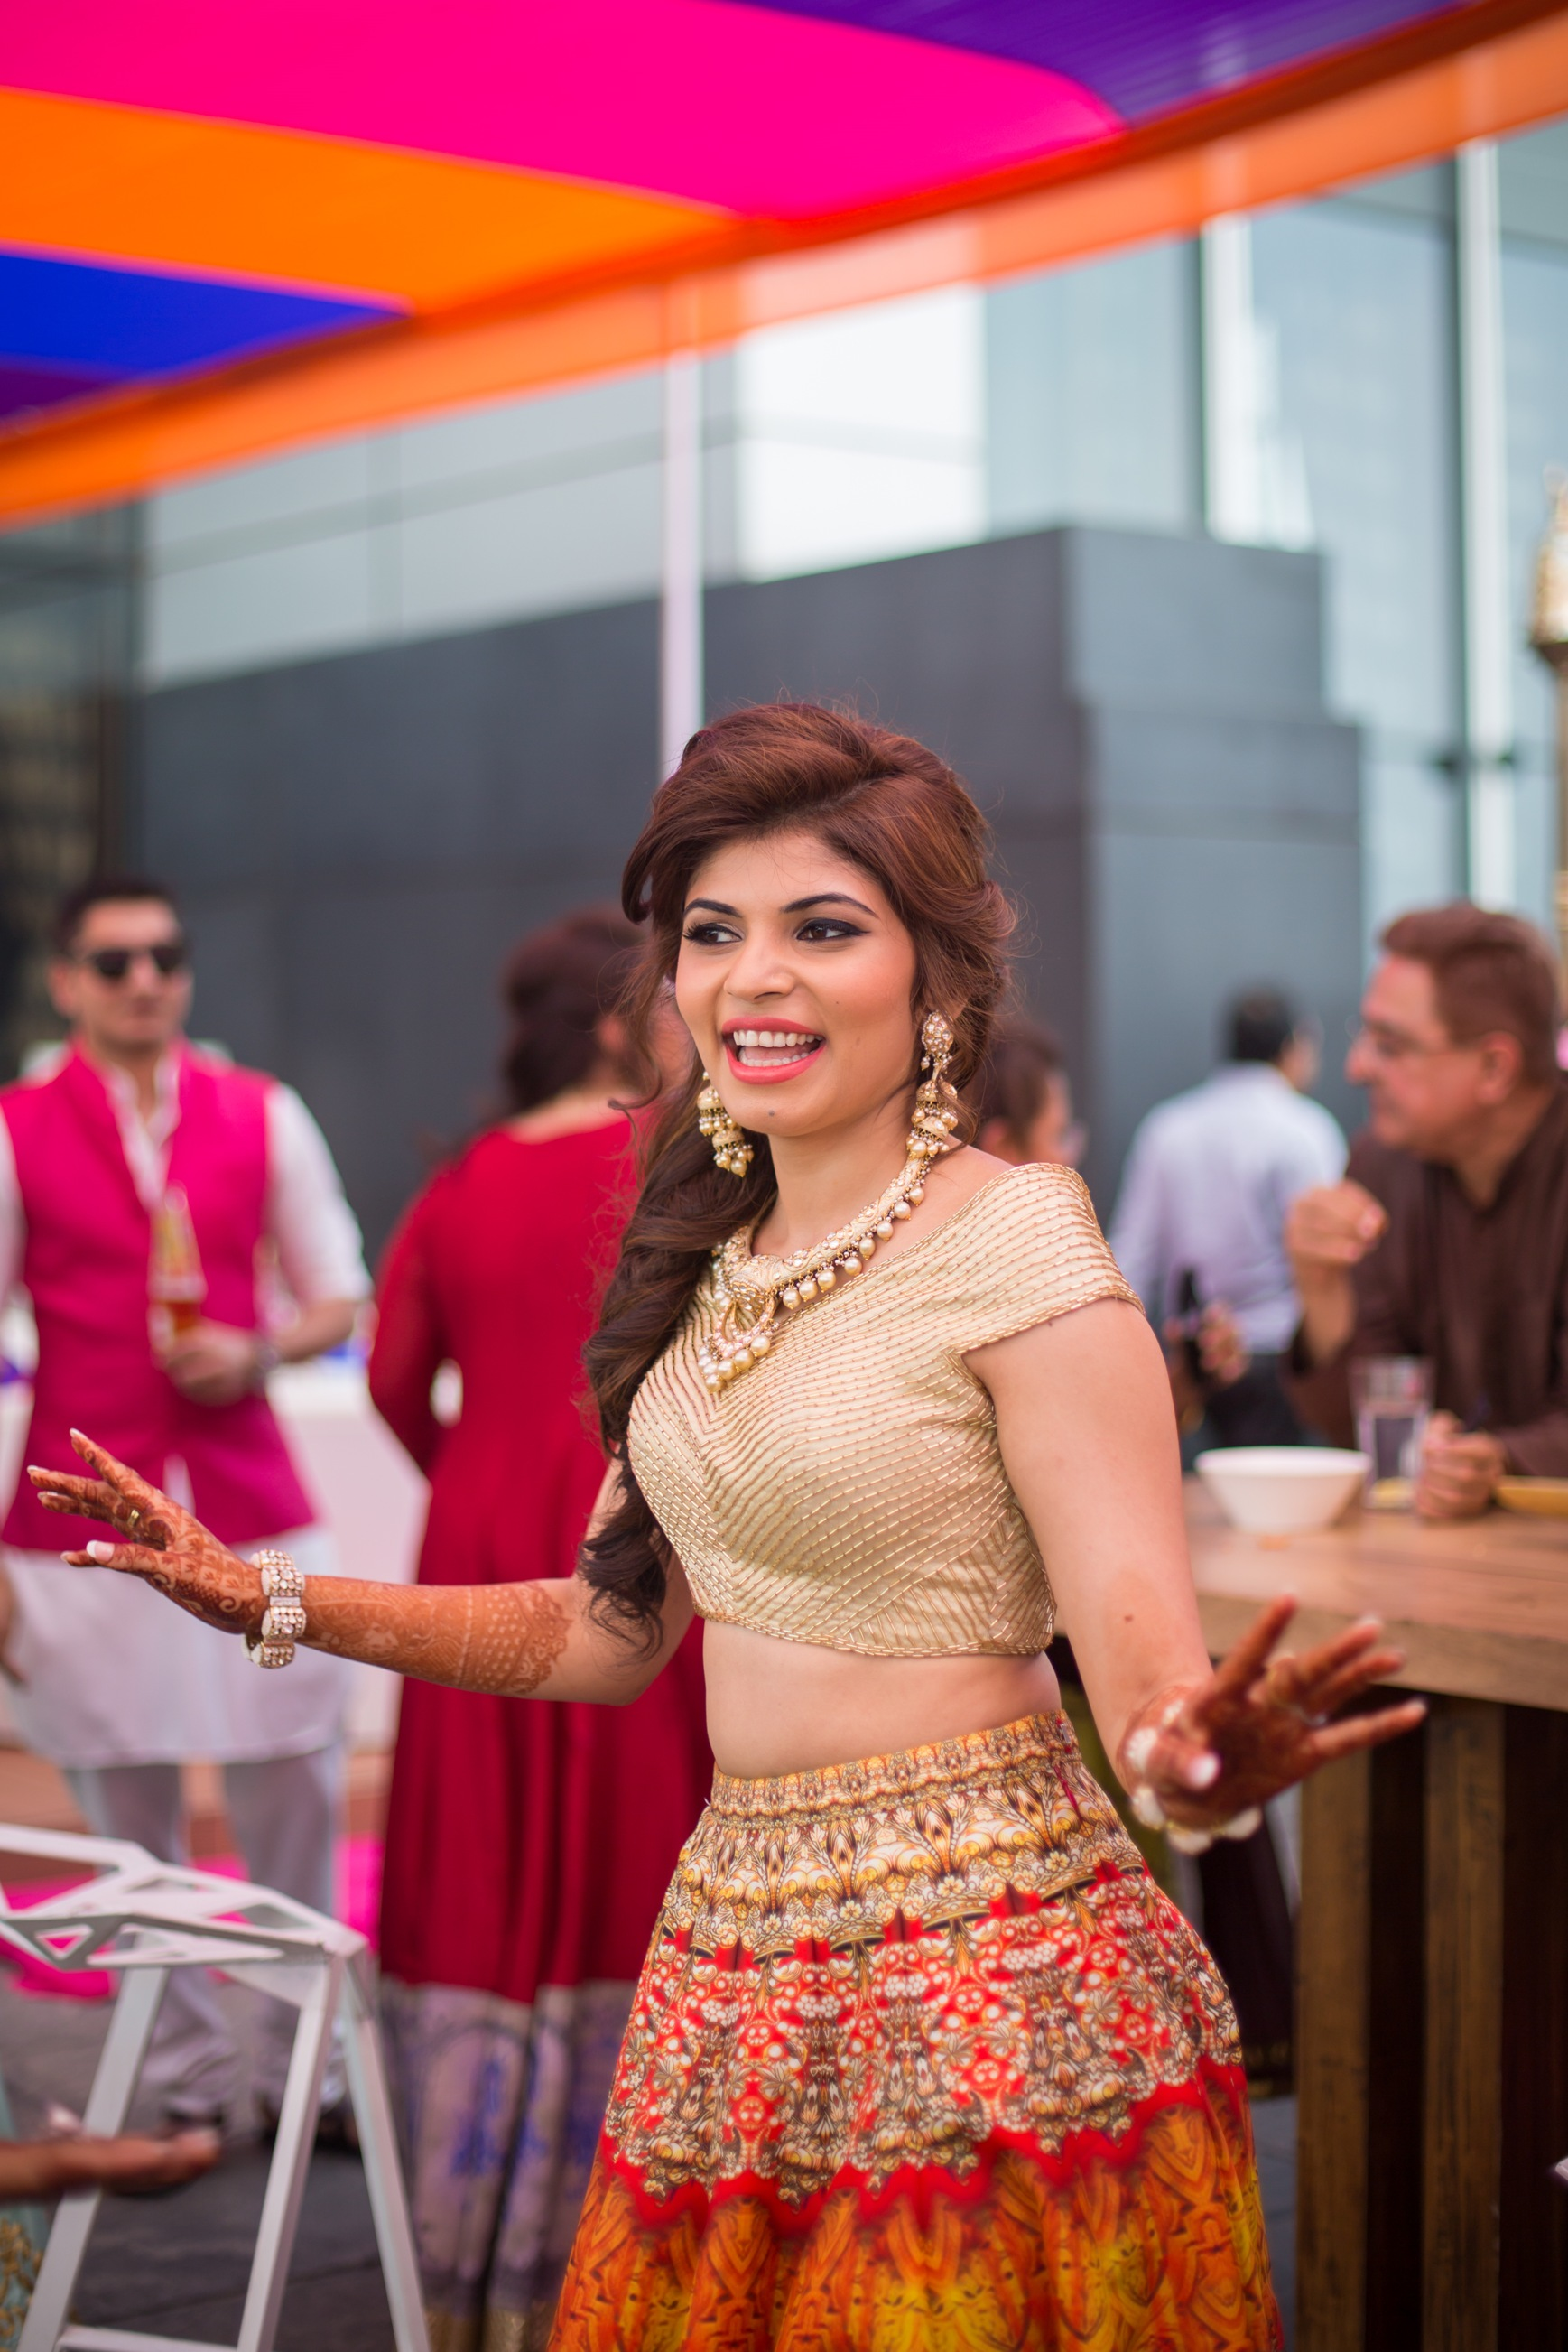 Mehndi Party What To Wear : This jw marriott pune wedding is giving us major bridal